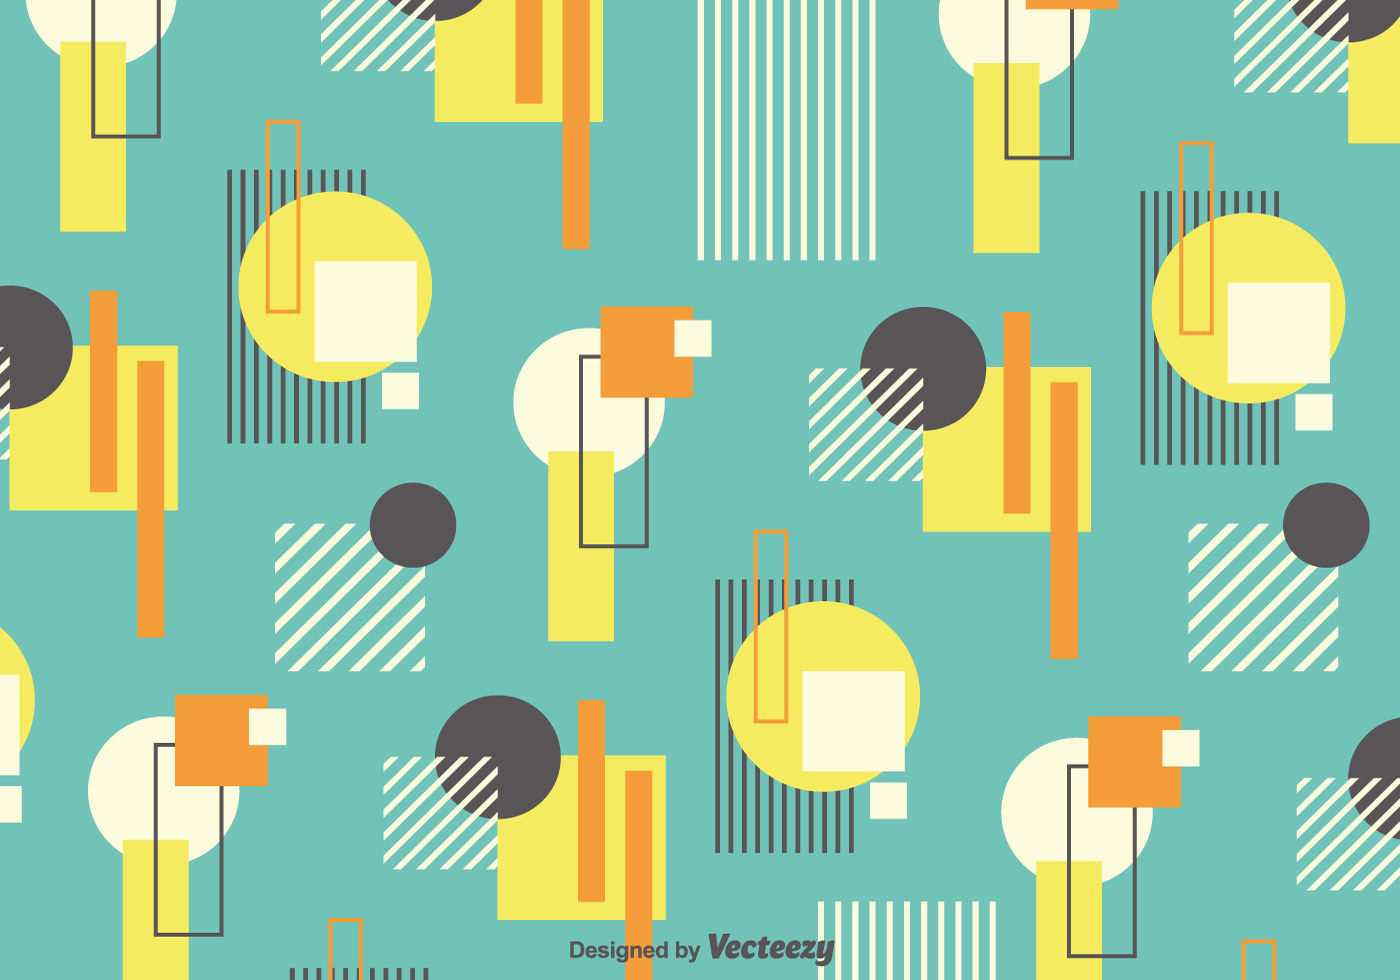 vector background with retro bauhaus style forms download free vector art stock graphics images. Black Bedroom Furniture Sets. Home Design Ideas